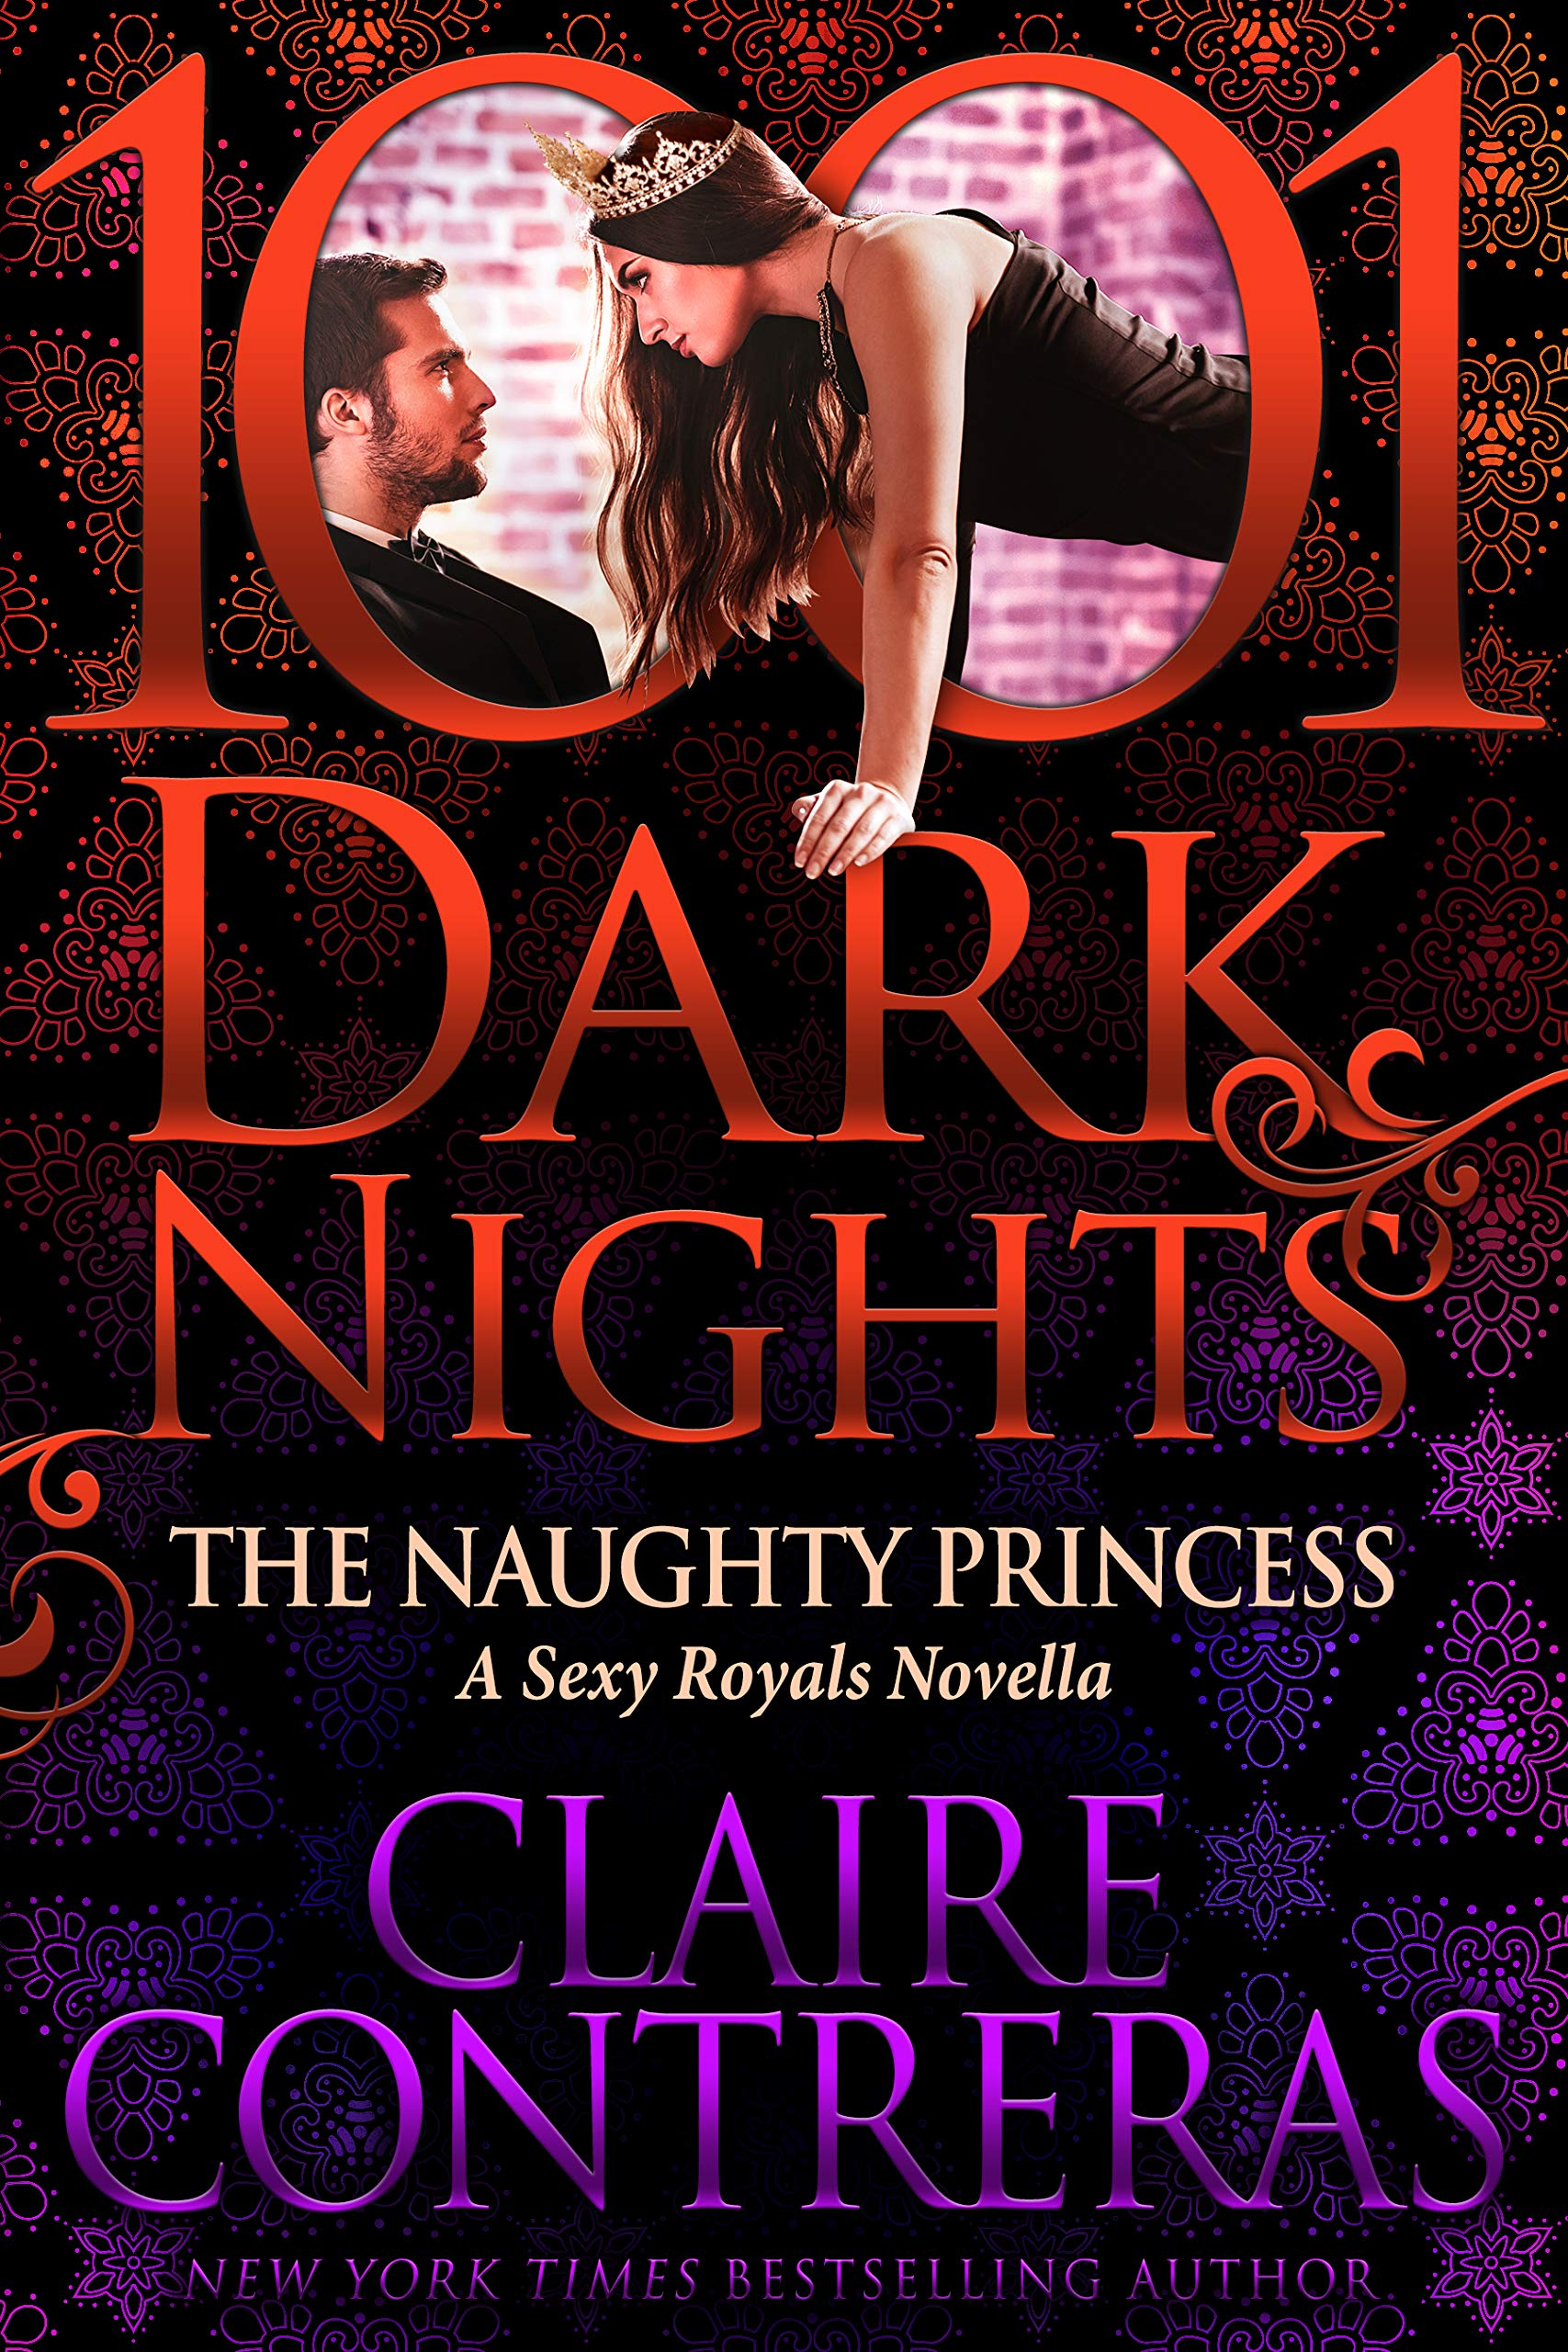 The Naughty Princess: A Sexy Royals Novella by Claire Contreras